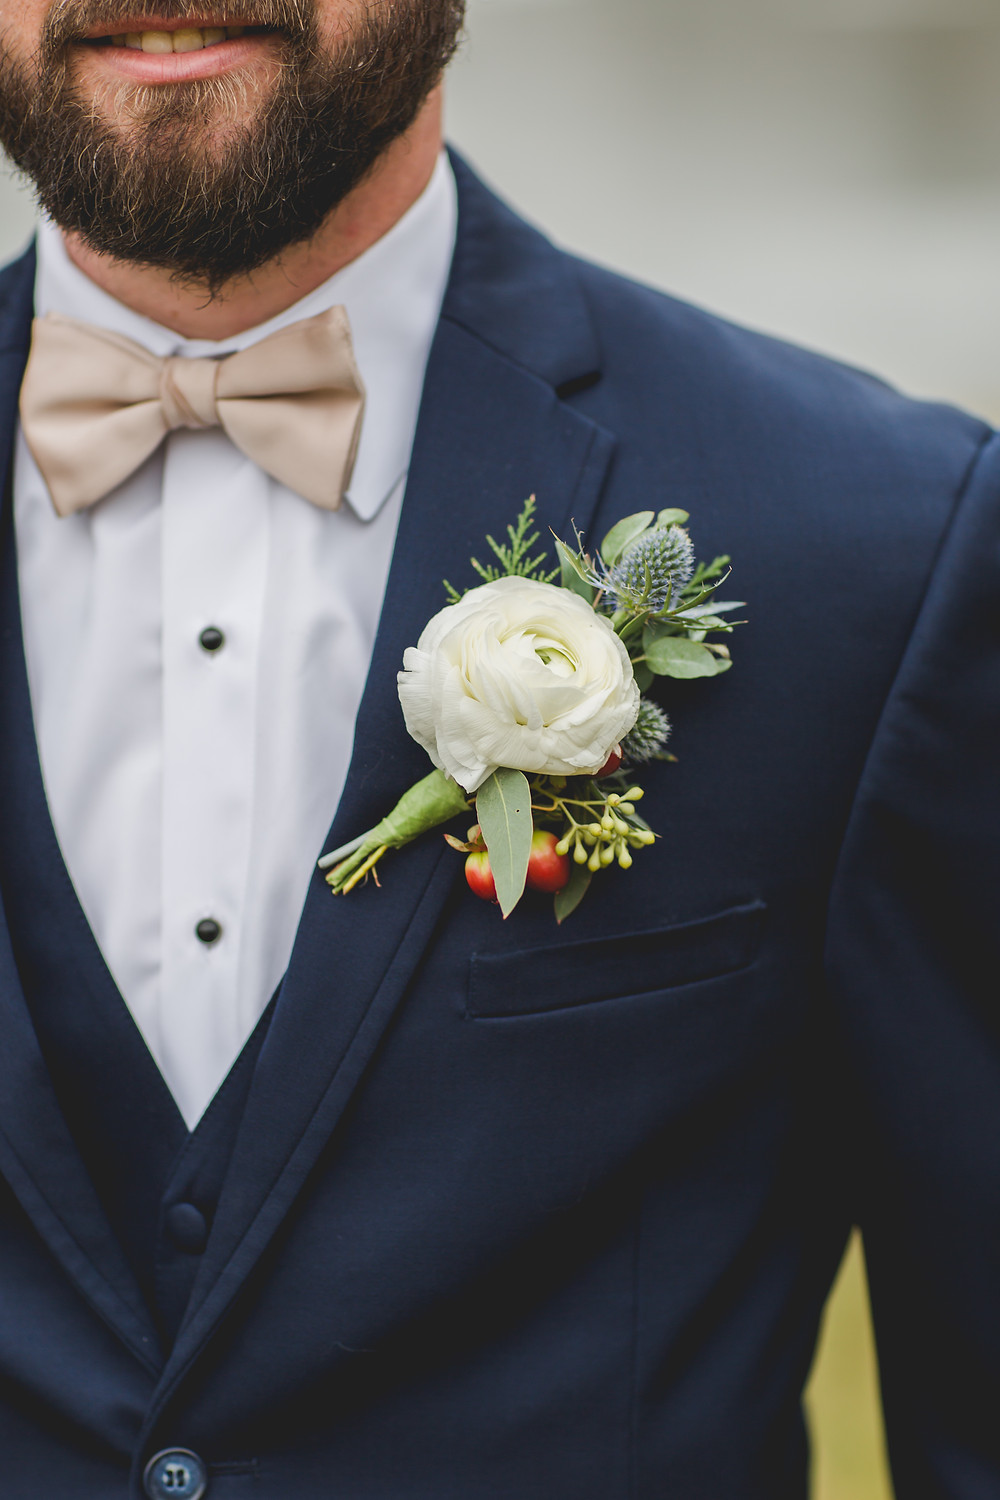 boutonniere, groom, wedding photography, wedding photographer